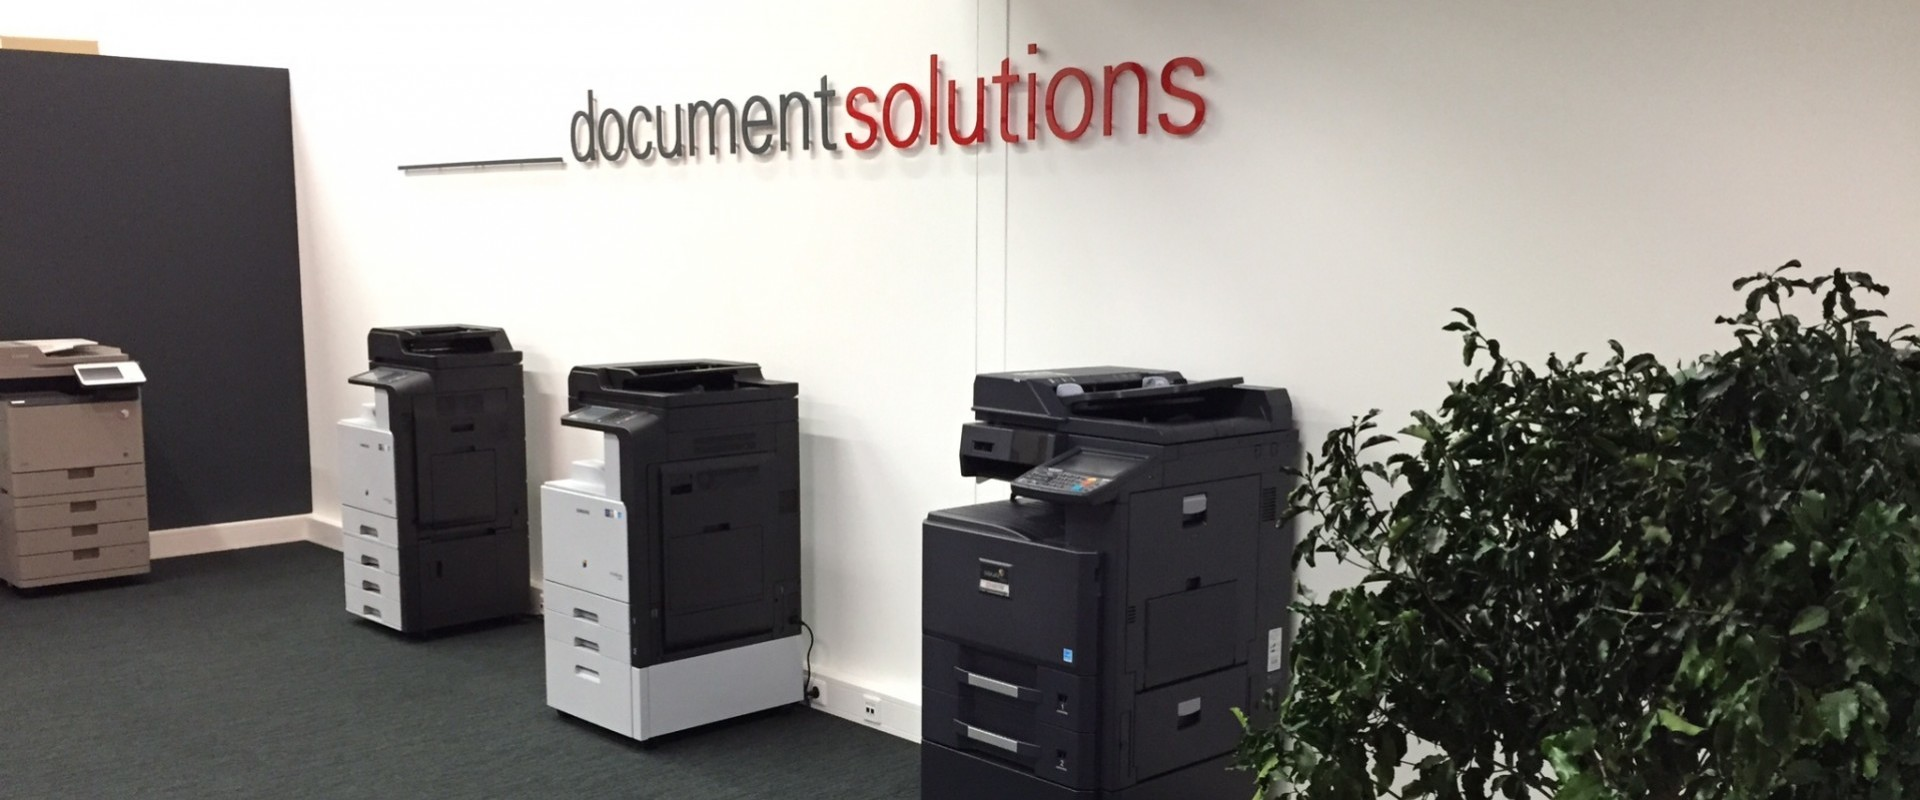 Interoffice Document Solutions BV